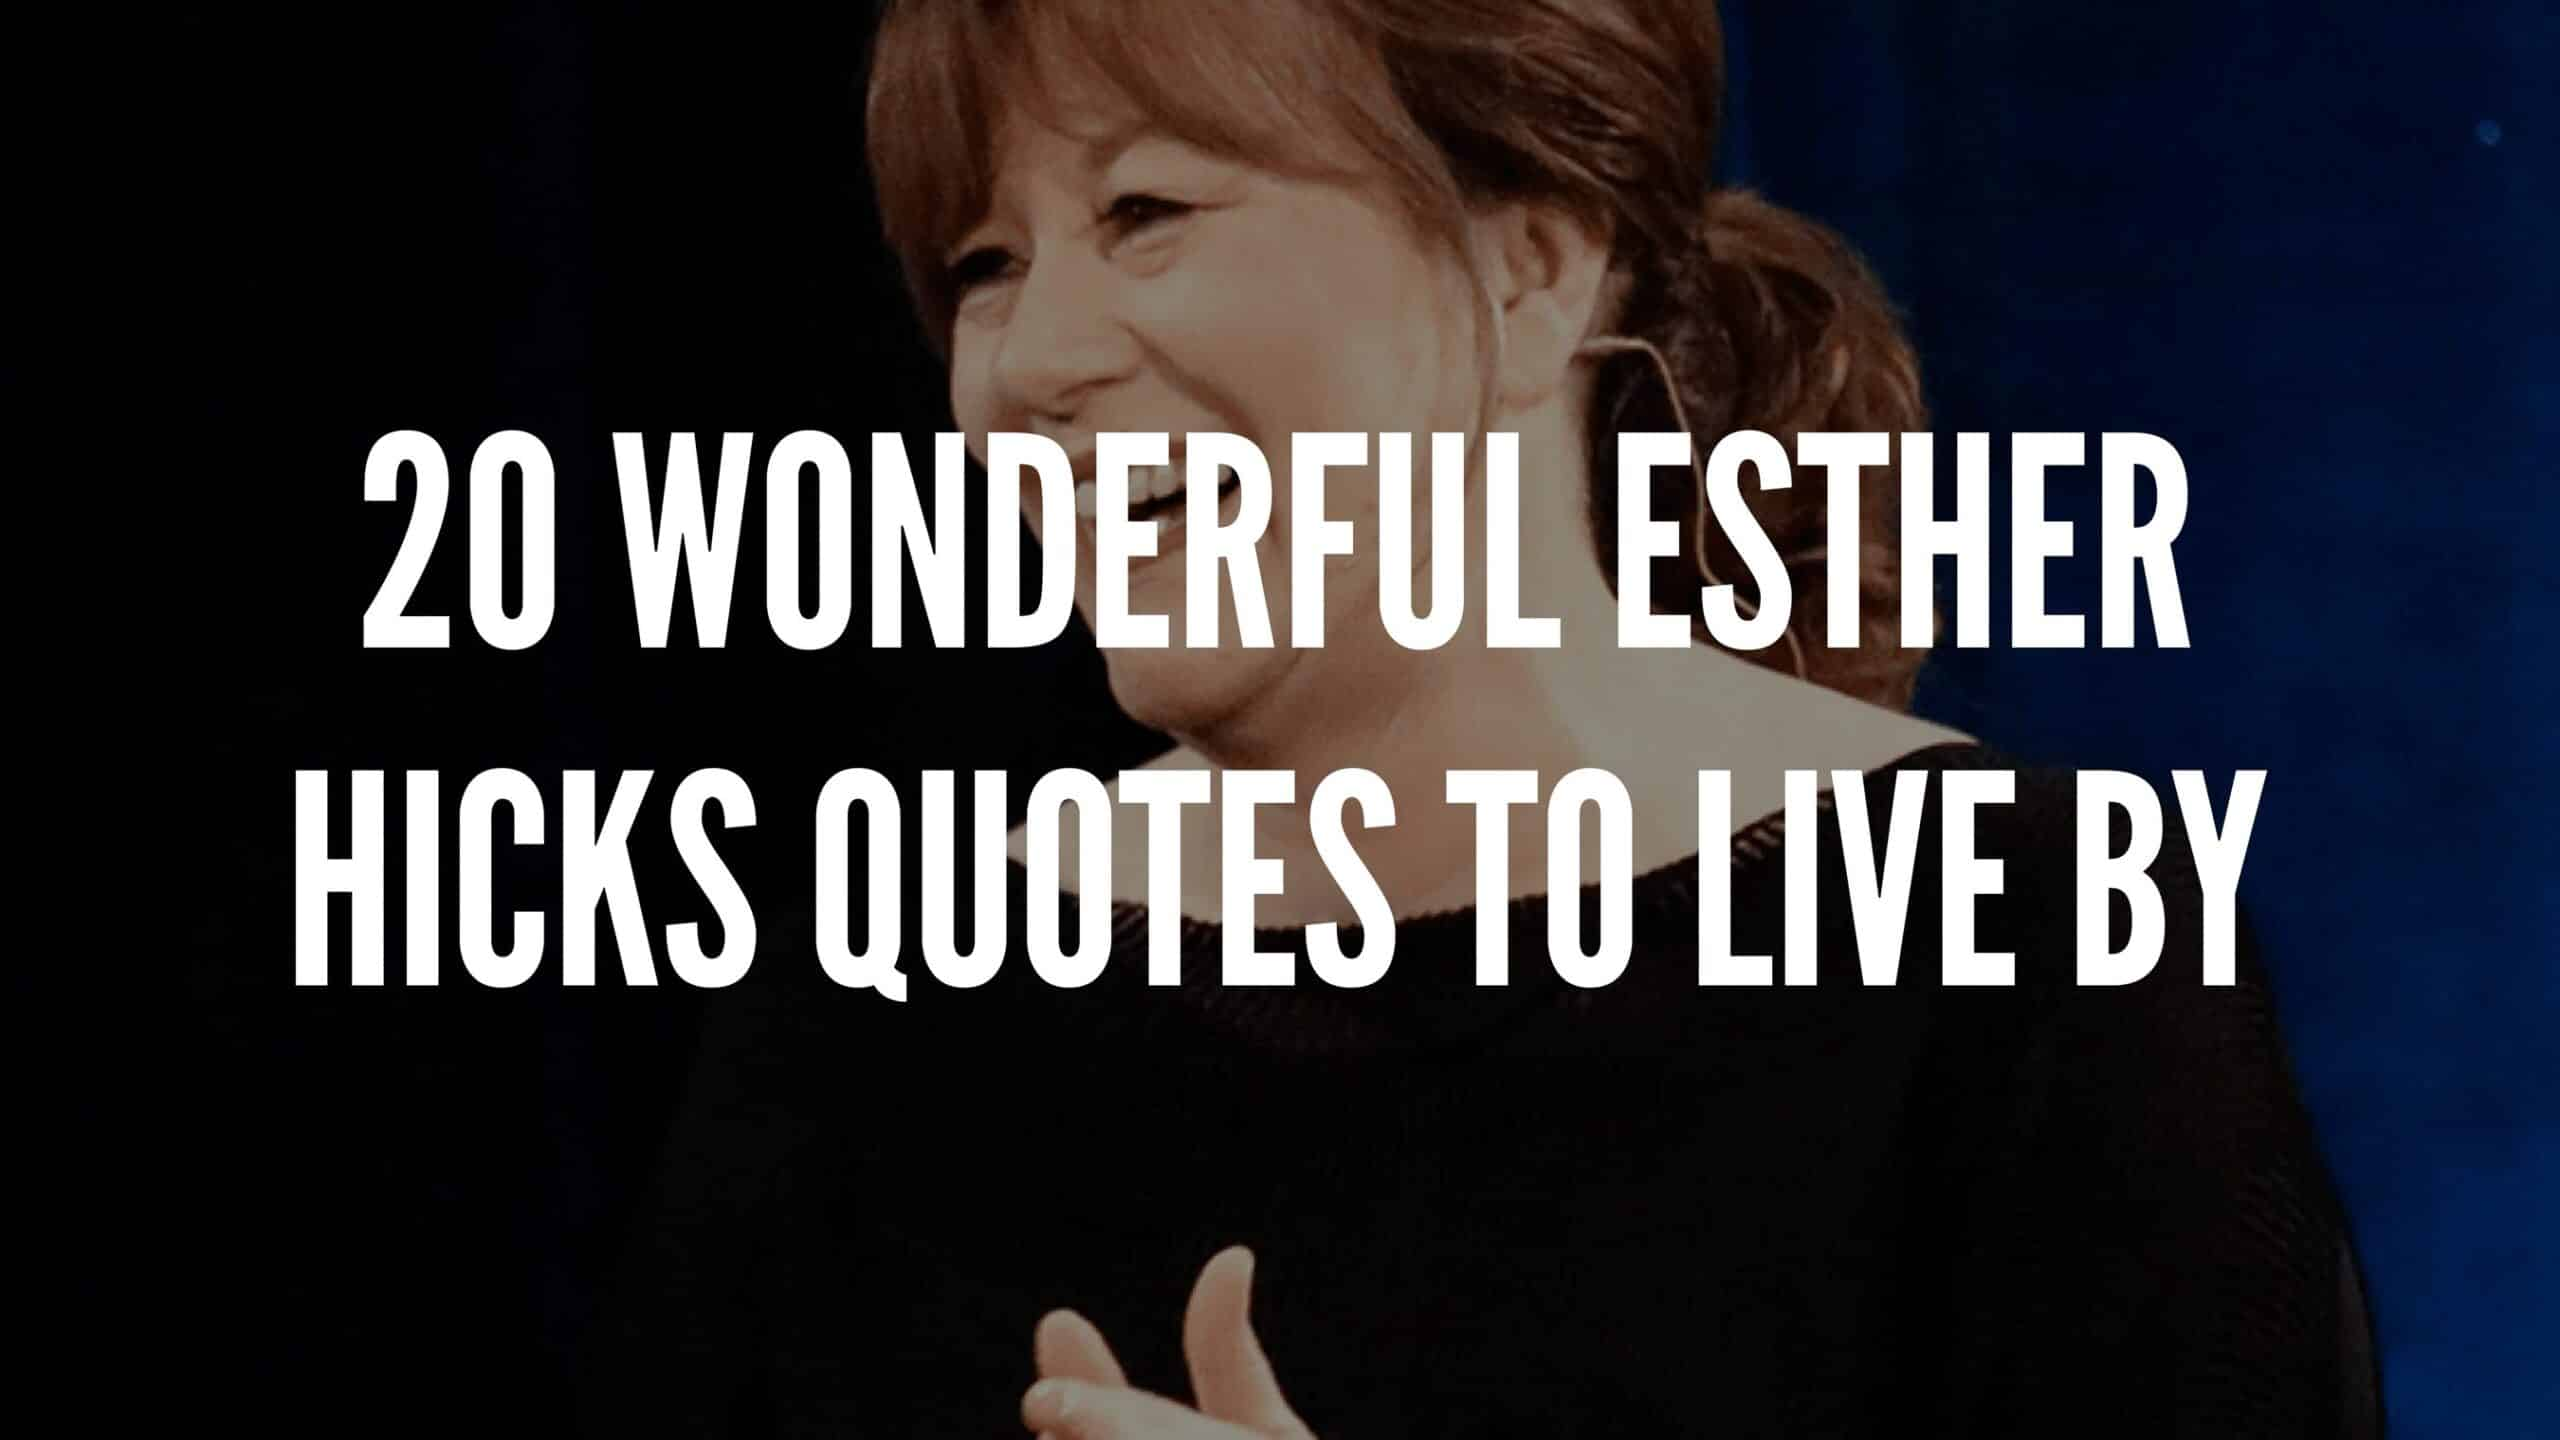 20 Wonderful Esther Hicks Quotes To Live By